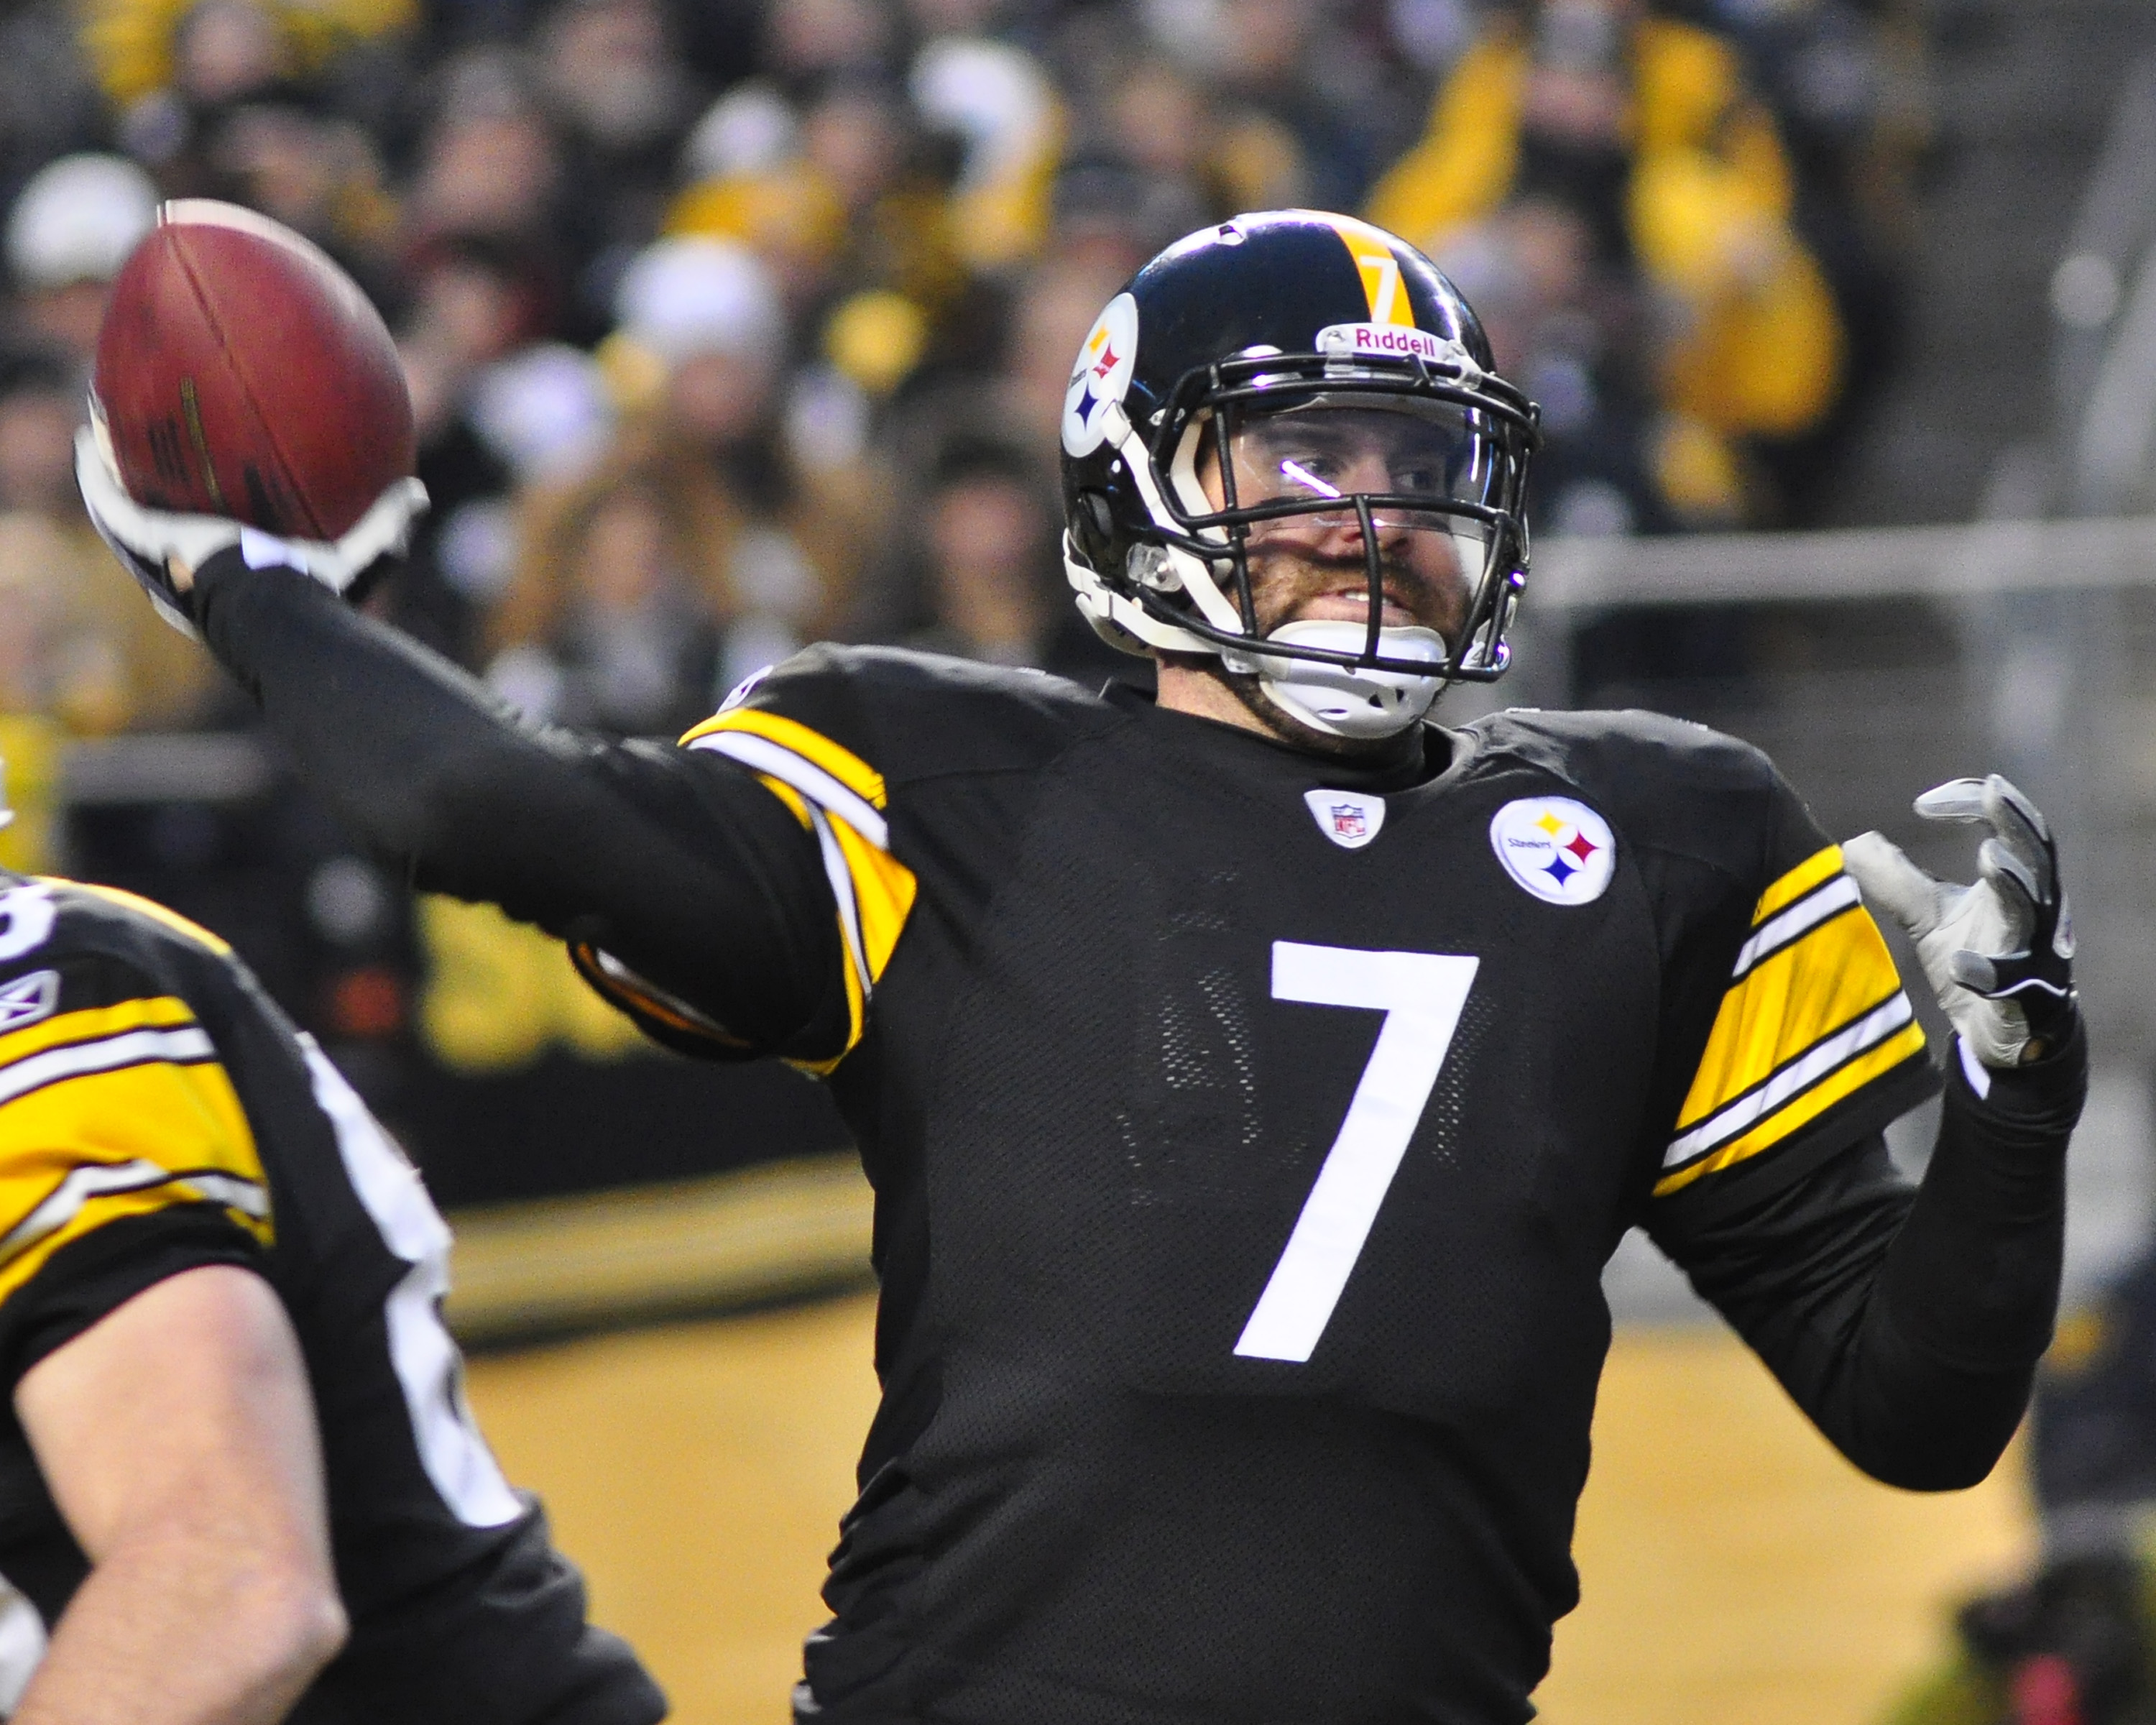 ben roethlisberger wallpapers high quality download free